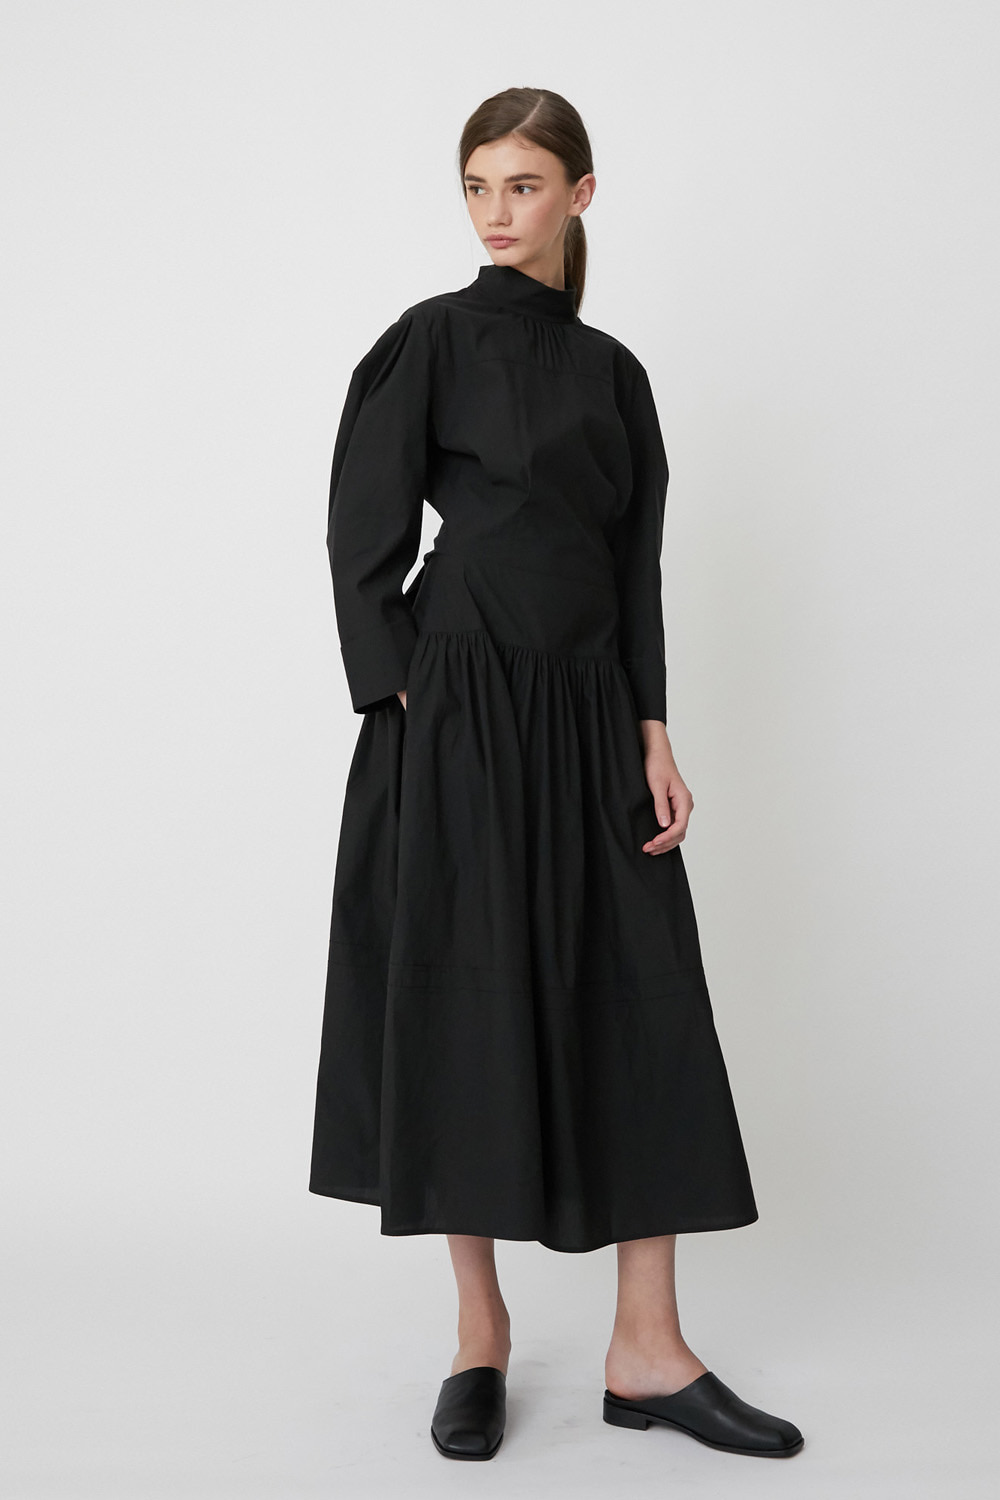 Dress Button Back Black